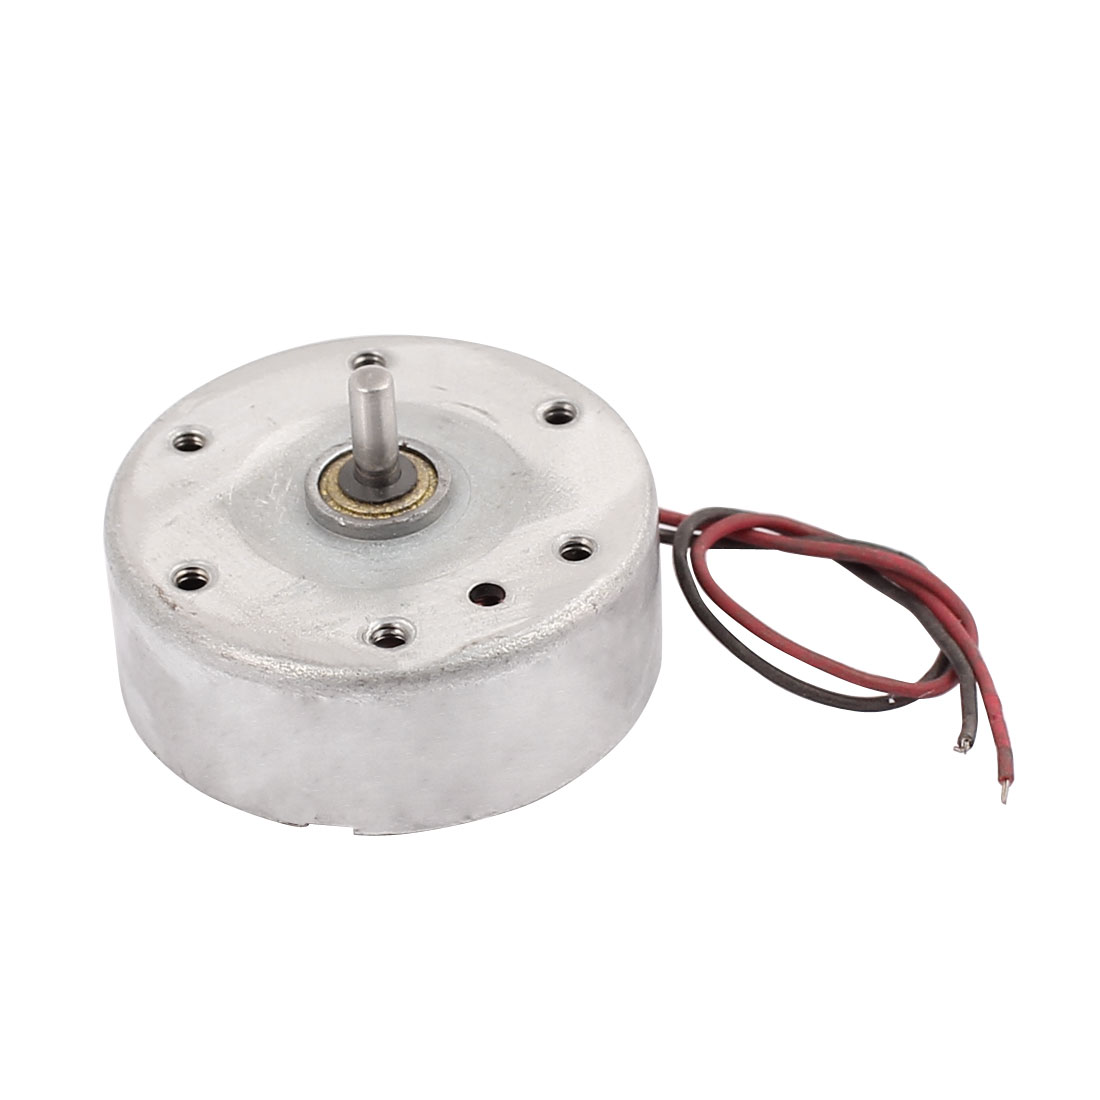 DC 3-5V 7500RPM Large Torque Cylindrical Micro Motor for Electric Massage